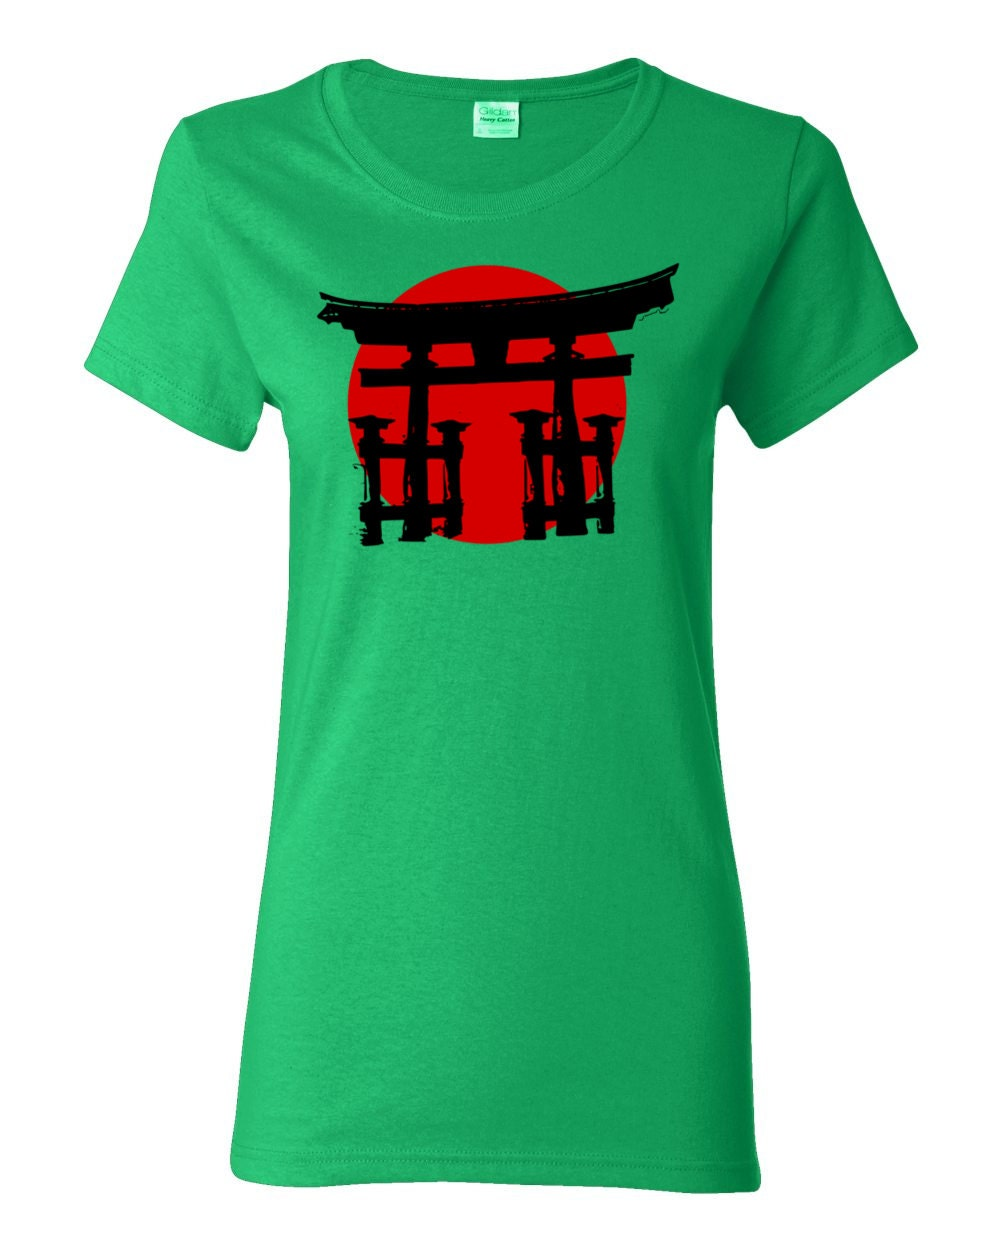 Japanese Shinto Shrine Womens T-shirt